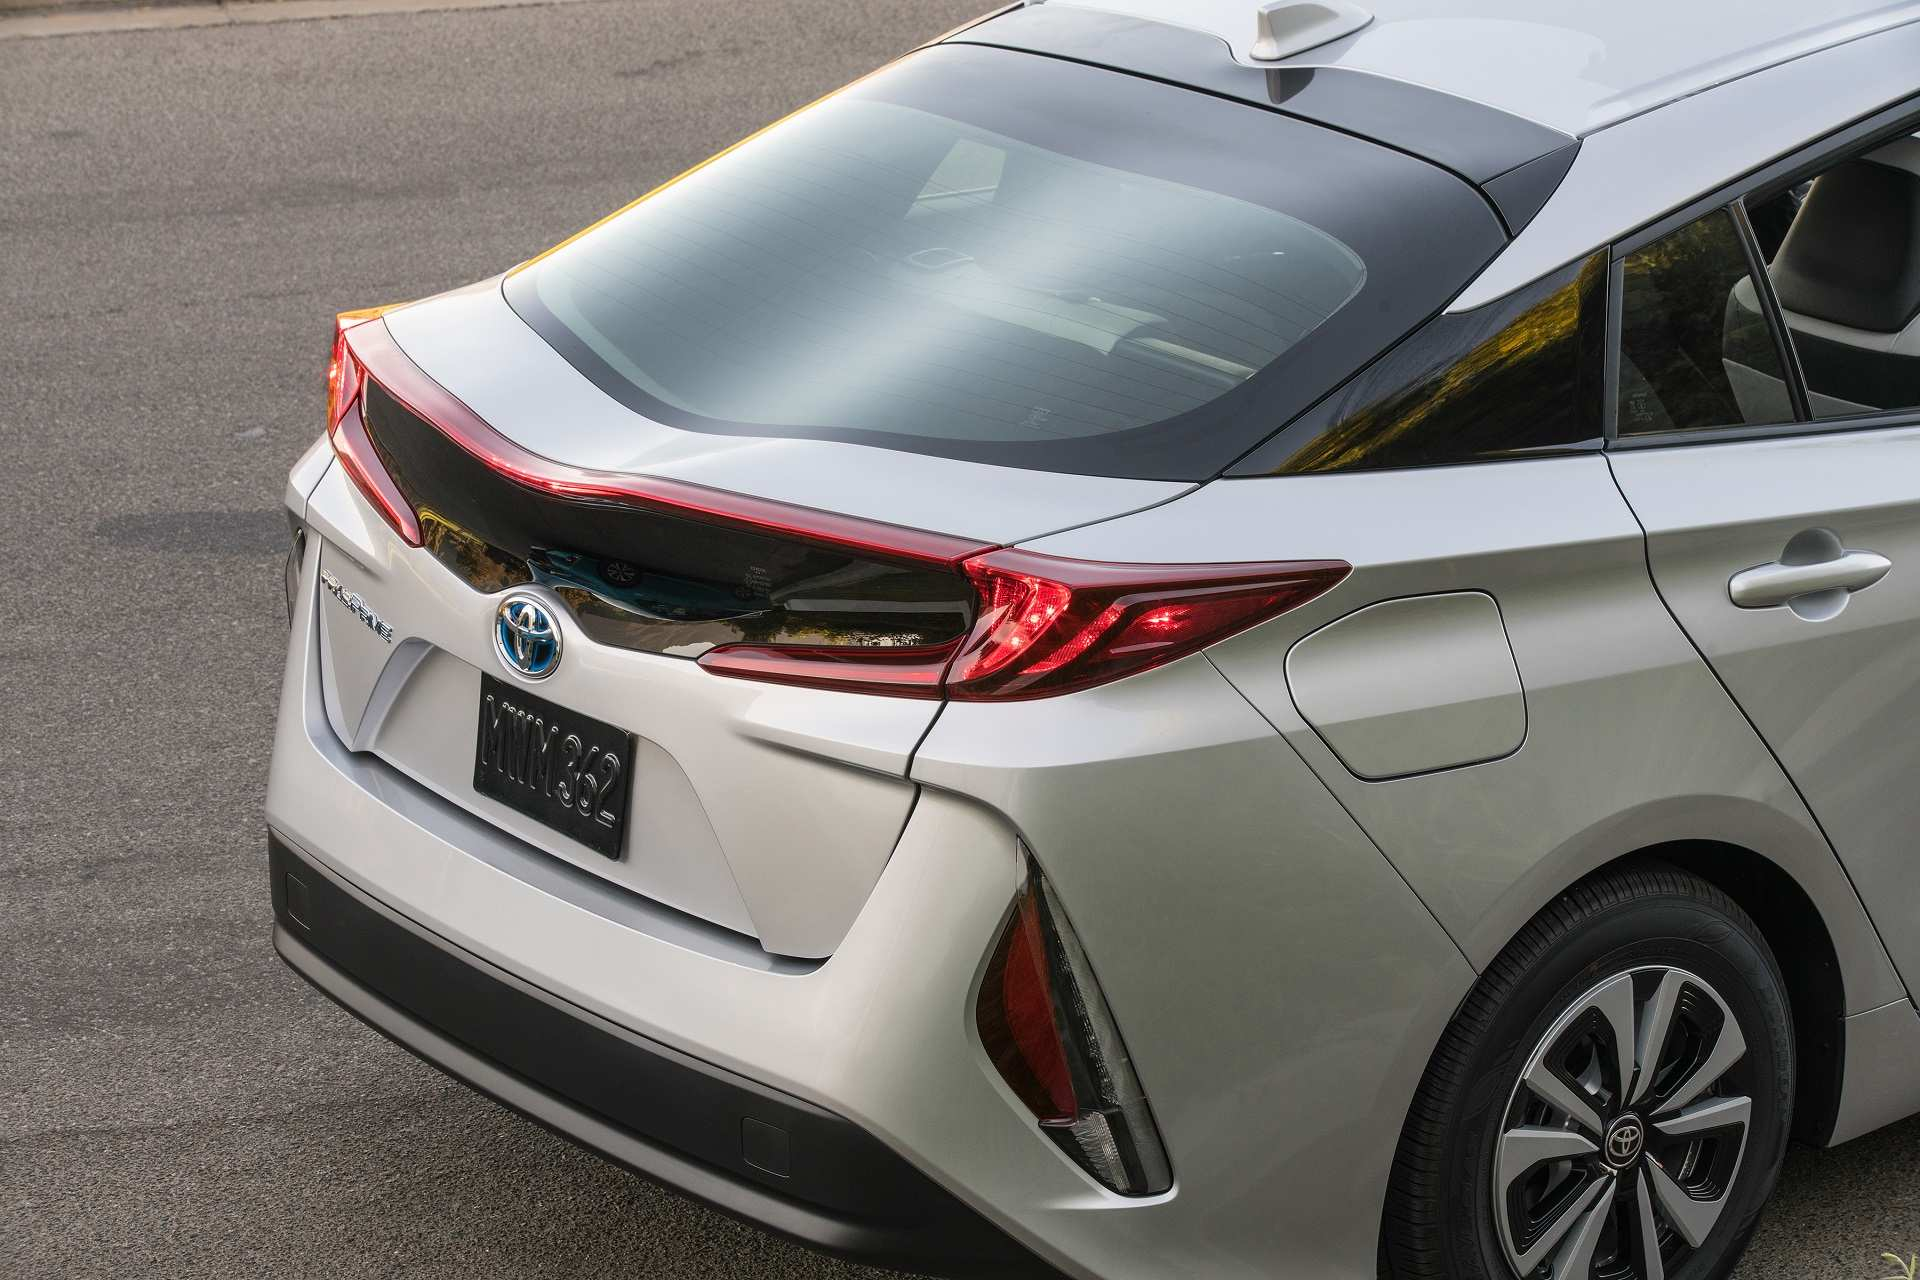 54 Great Toyota Prius 2020 New Review with Toyota Prius 2020